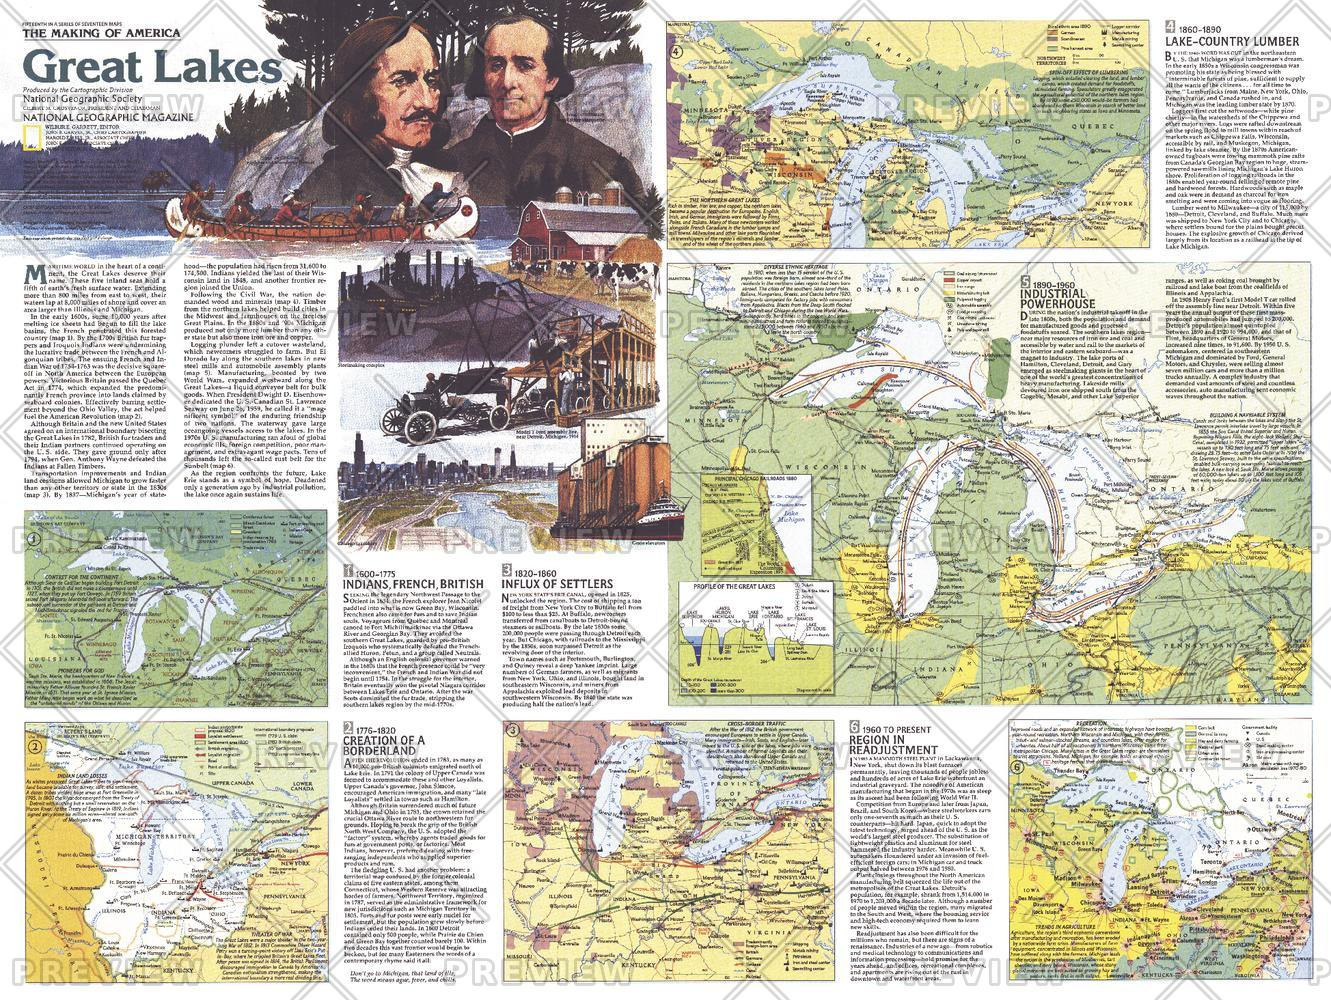 Great Lakes Map Side 2 - Published 1987